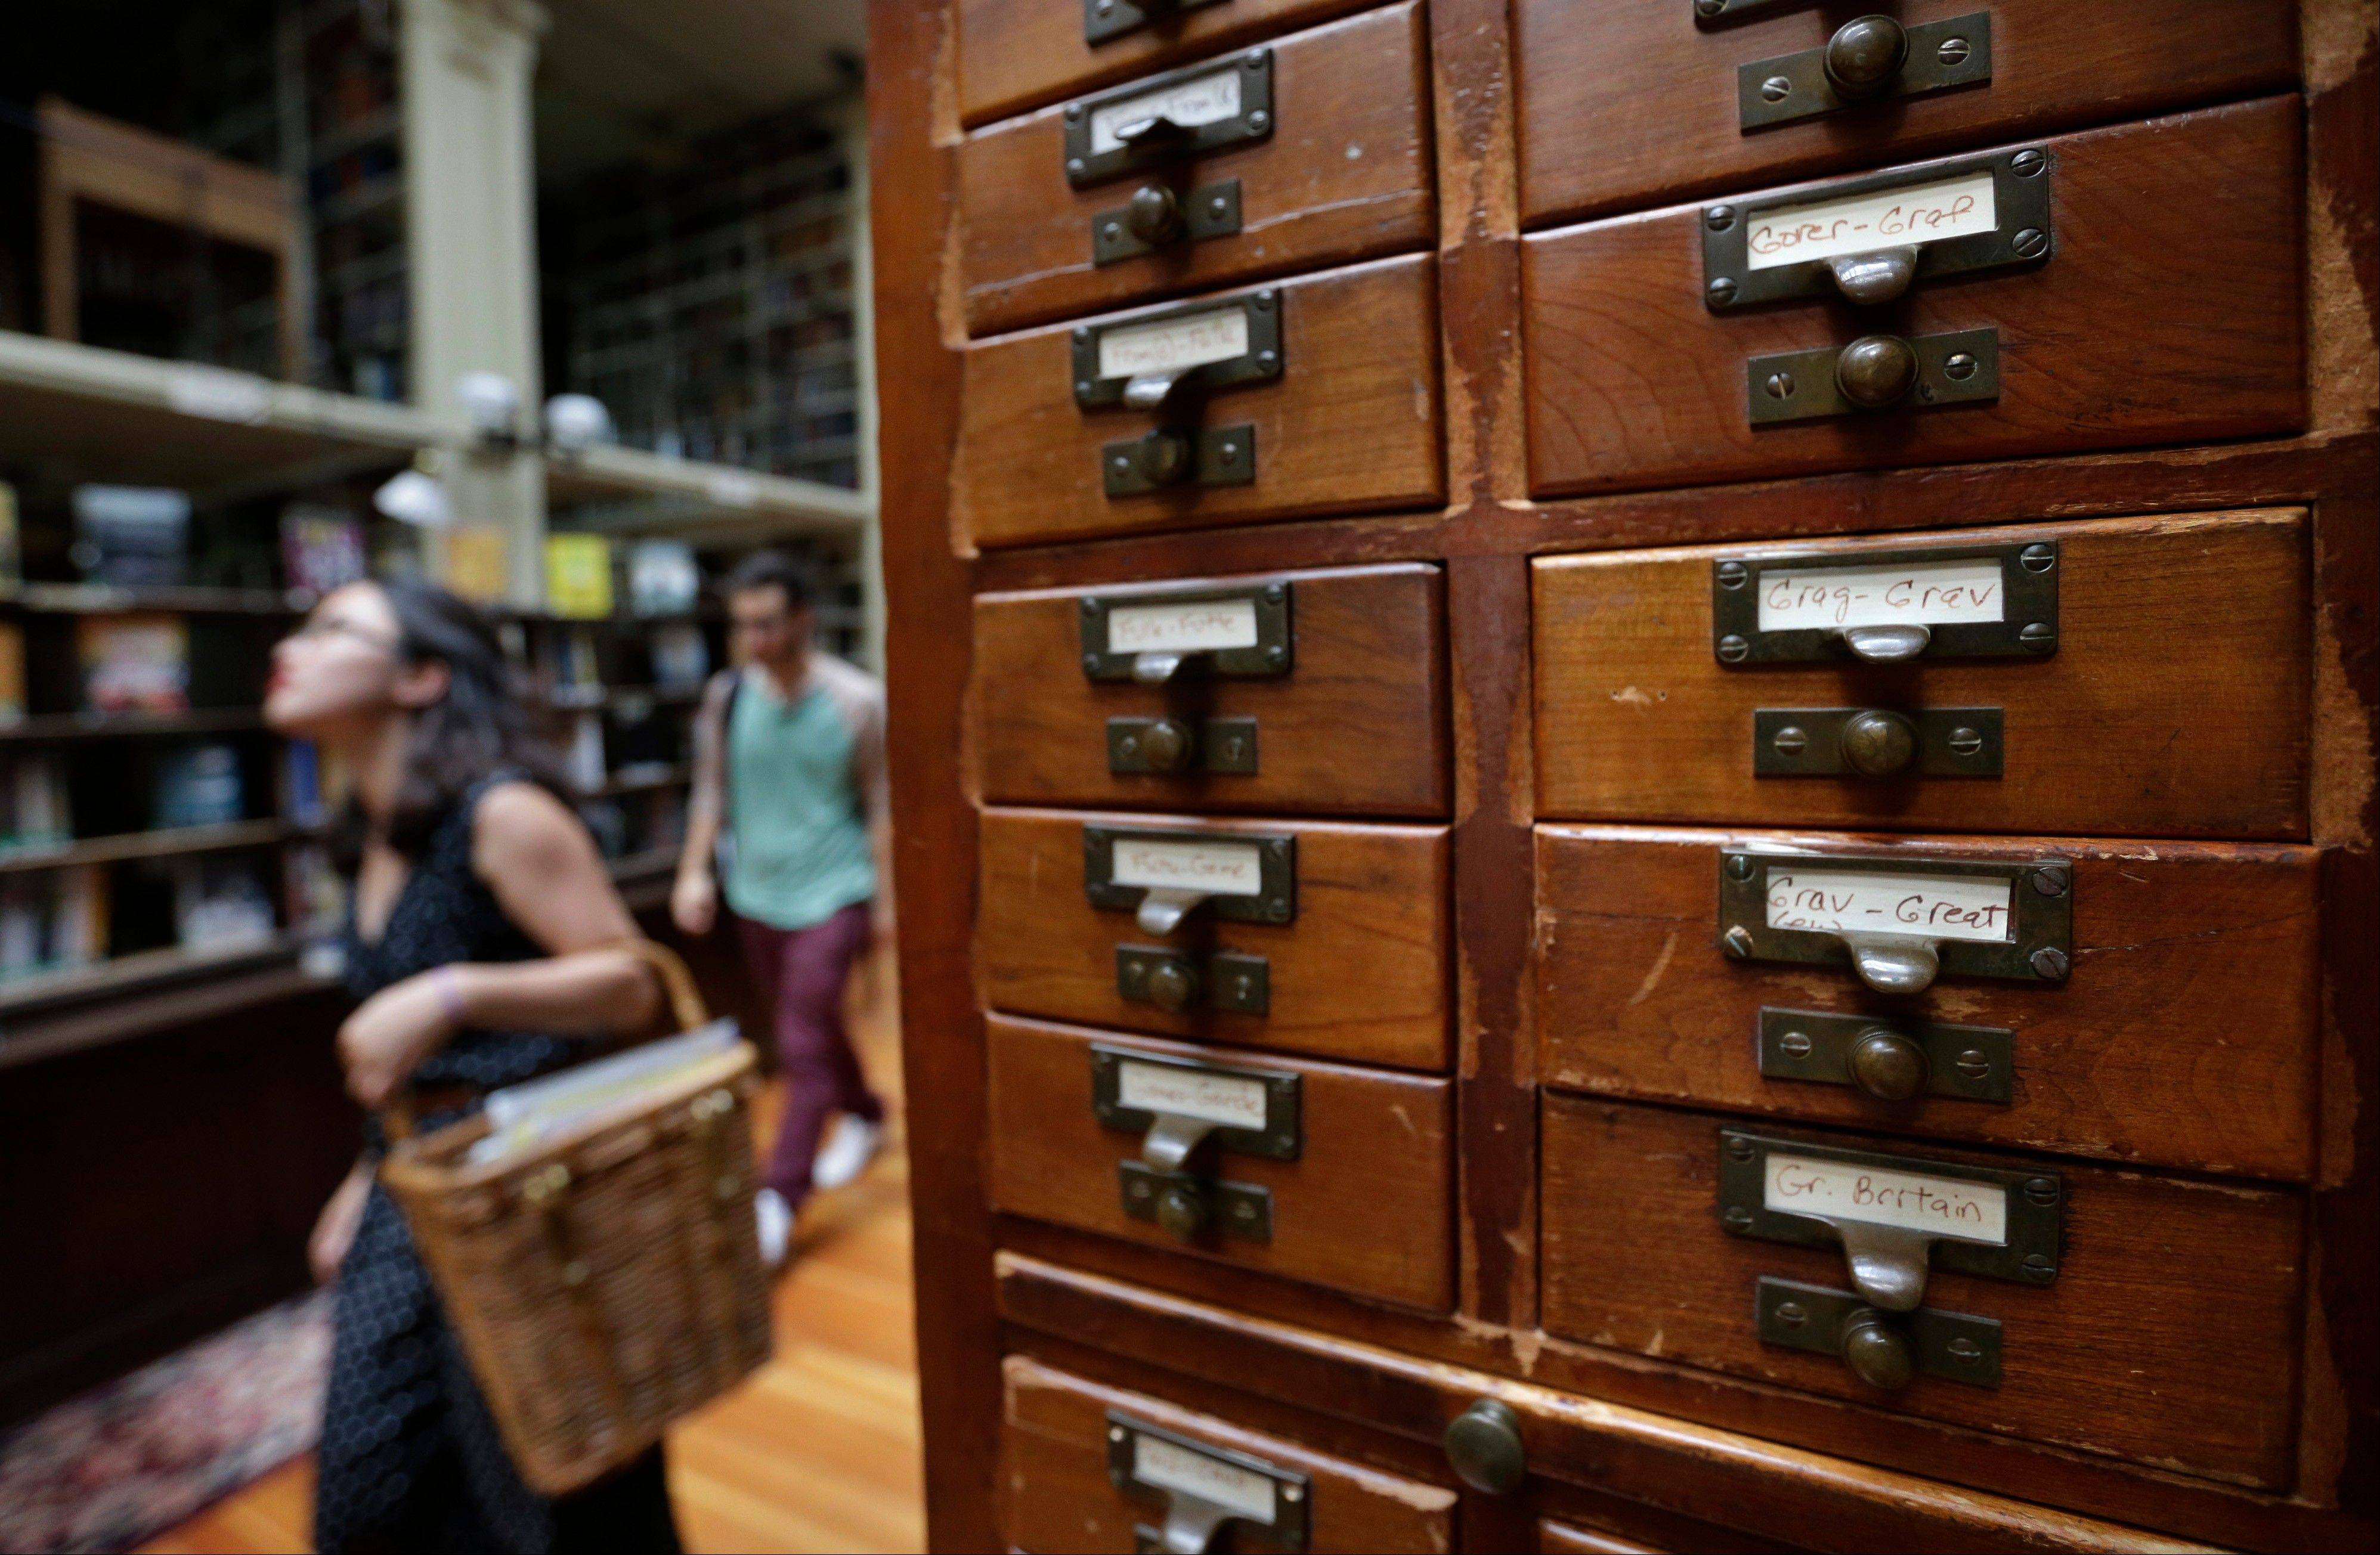 Brown University students Nicha Ratana-Apiromyakij, left, and Nick Melachrinos, walk past a card catalog at the Providence Athenaeum, in Providence, R.I. With roots dating back to 1753, the private library is one of the oldest in the country.